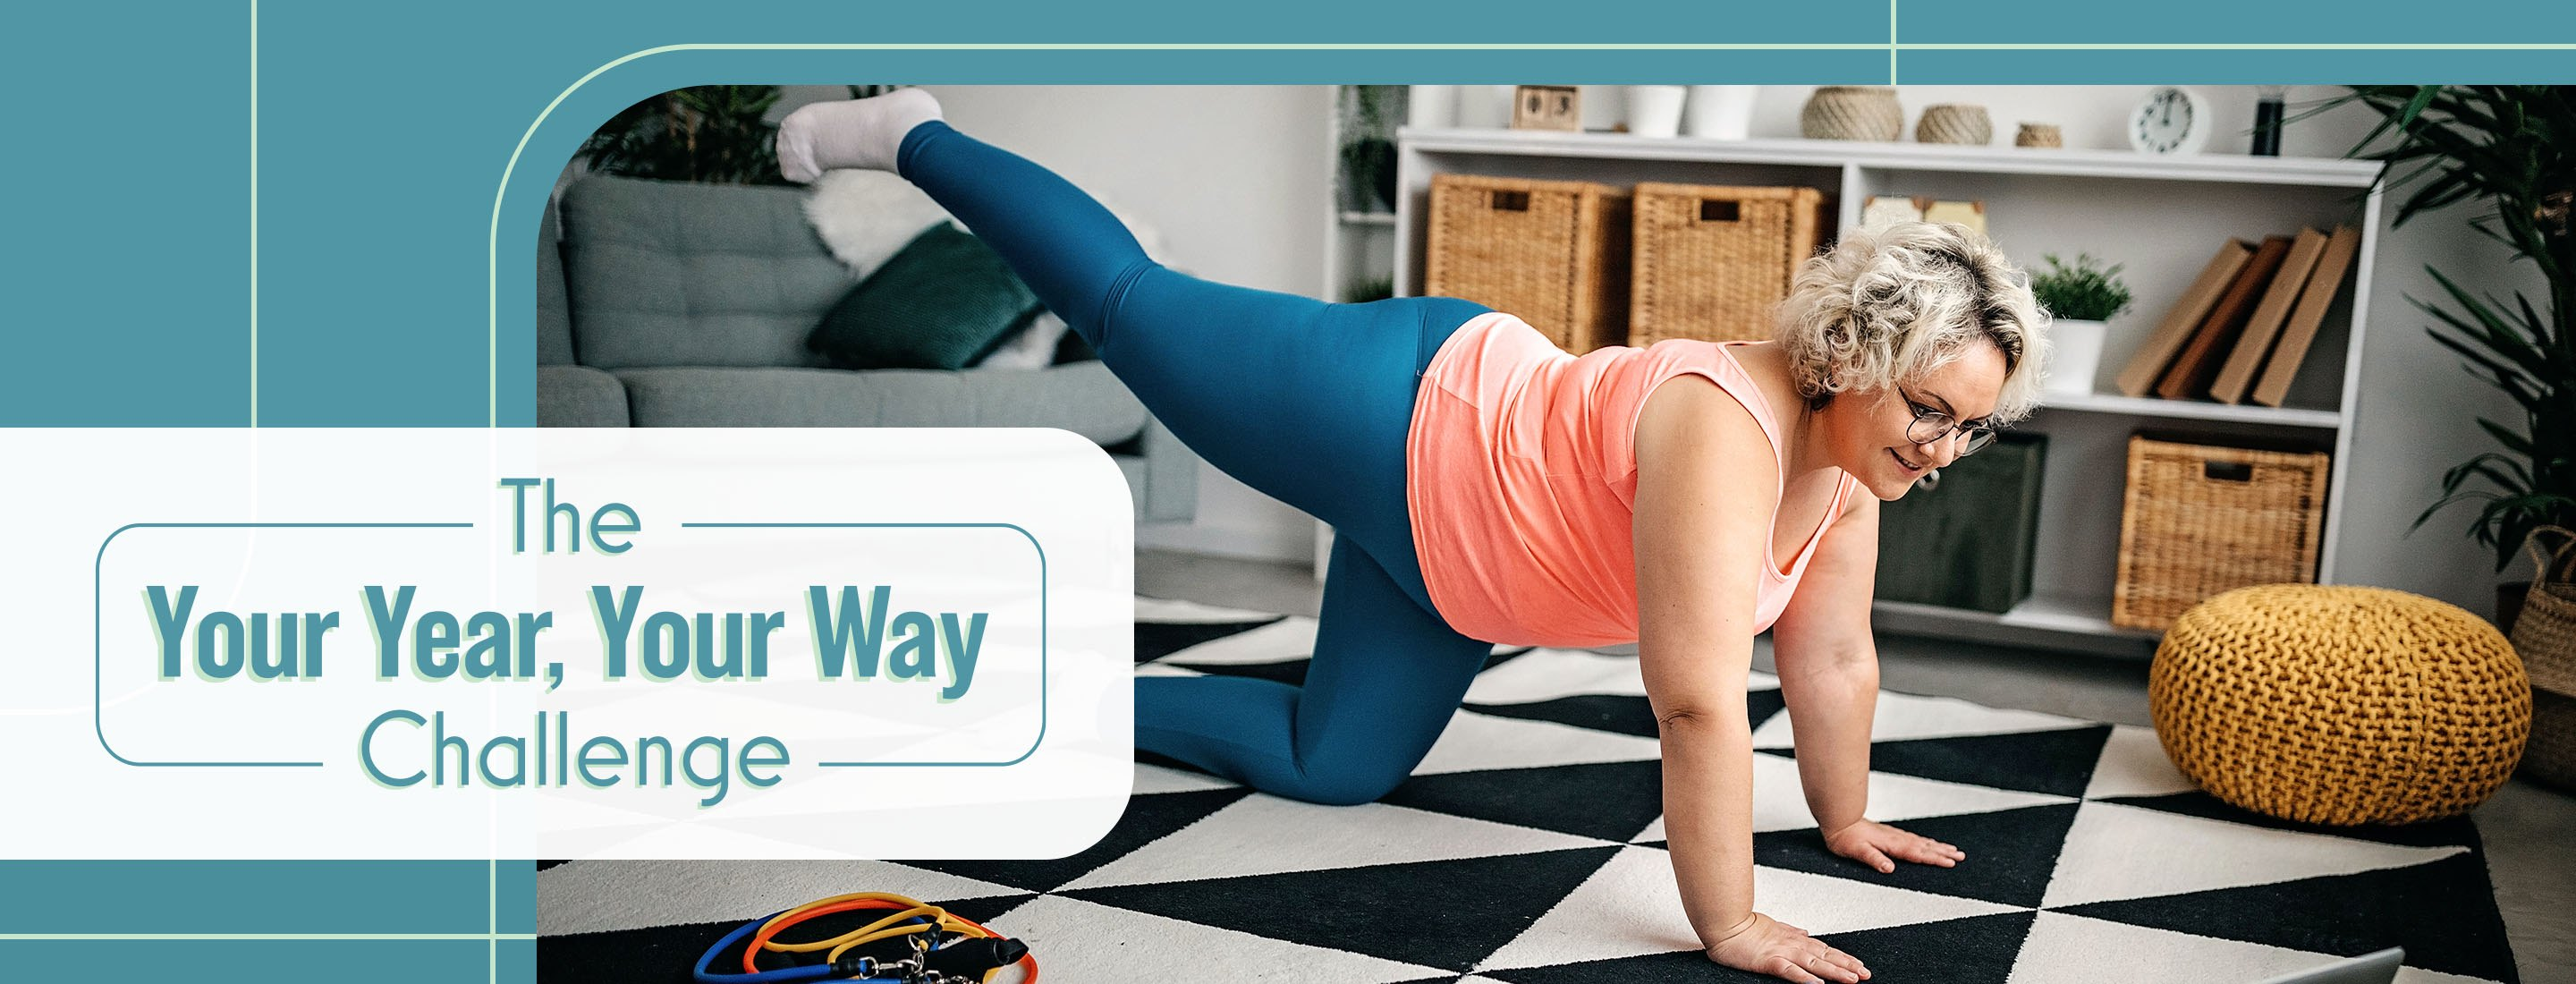 woman doing home workout on tiled floor with laptop and resistance bands for your year your way challenge